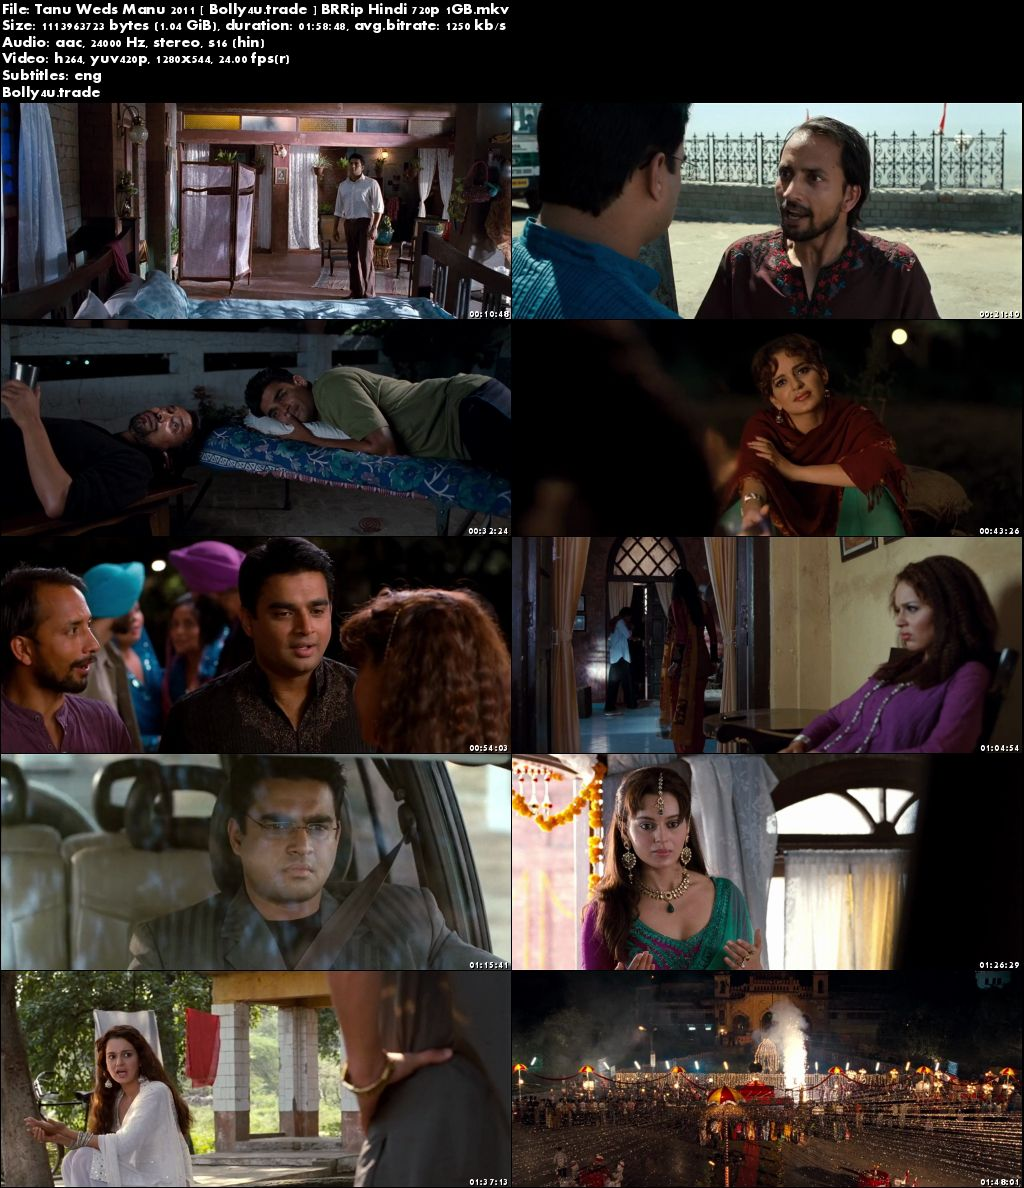 Tanu Weds Manu 2011 BRRip 350MB Full Hindi Movie Download 480p